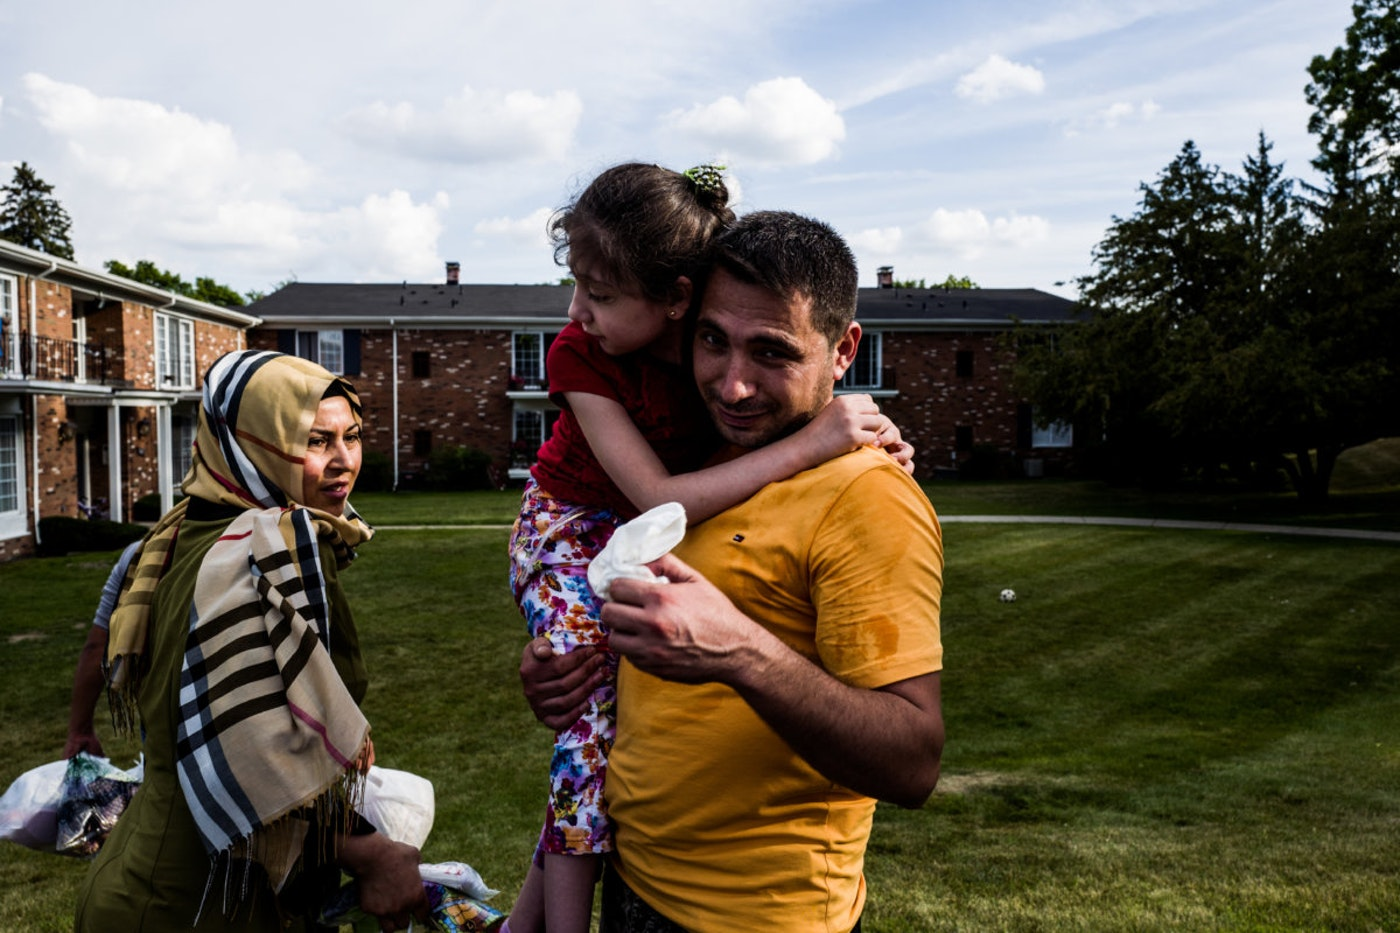 The Haji Khalif family arrives at their new home on July 24, 2015 in Bloomfield, Michigan. The Kurdish family of five moved here from their first placement home in Dearborn due to their daughters disability. They originally fled their own home in Aleppo and lived in Jordan before coming to the United States. Since the war started the United States has resettled under 1,500 refugees, despite over 12,000 applications. That fall, U.S. President Barack Obama announced that least 10,000 displaced Syrians will be allowed into the United states over the next year. This announcement was followed up by U.S. Secretary of State John Kerry announcing the United States would accept 85,000 refugees from around the world next year and that total would rise to 100,000 in 2017.